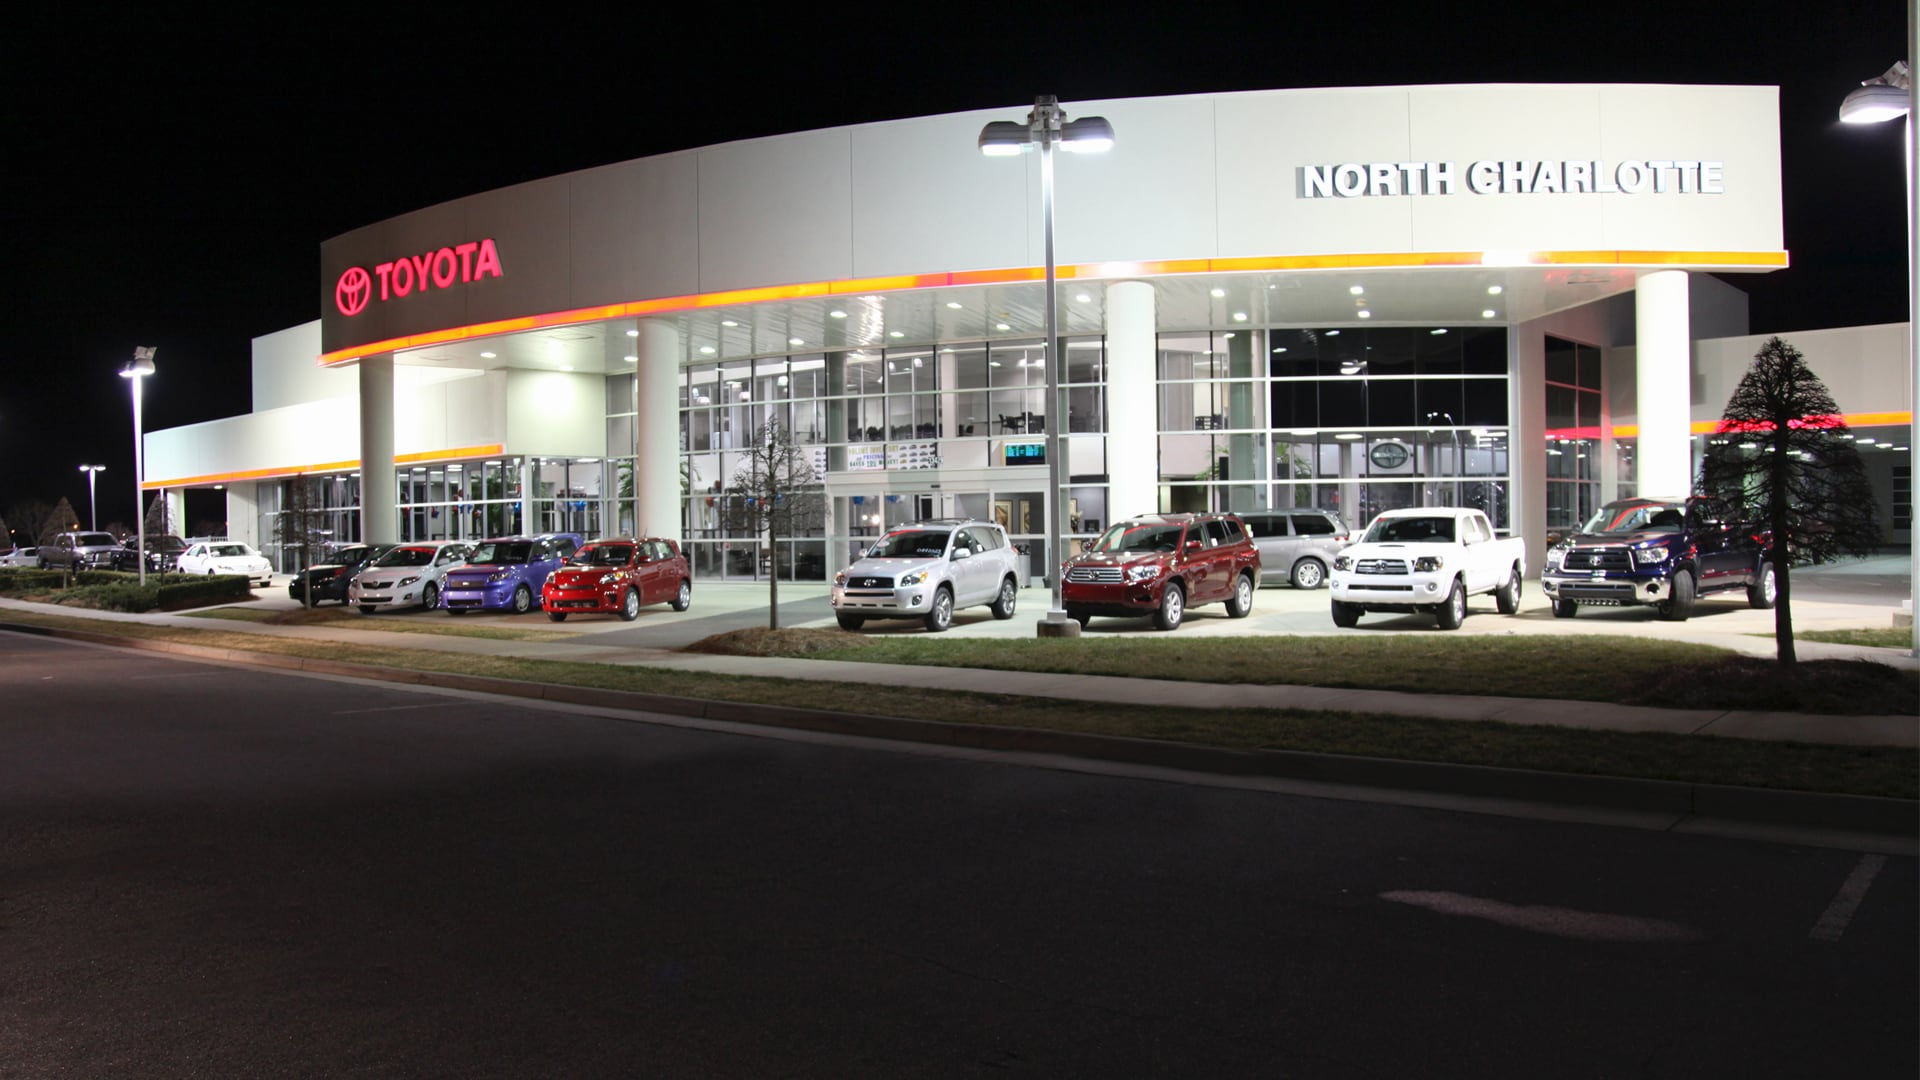 Toyota Of North Charlotte About Toyota Dealer Serving